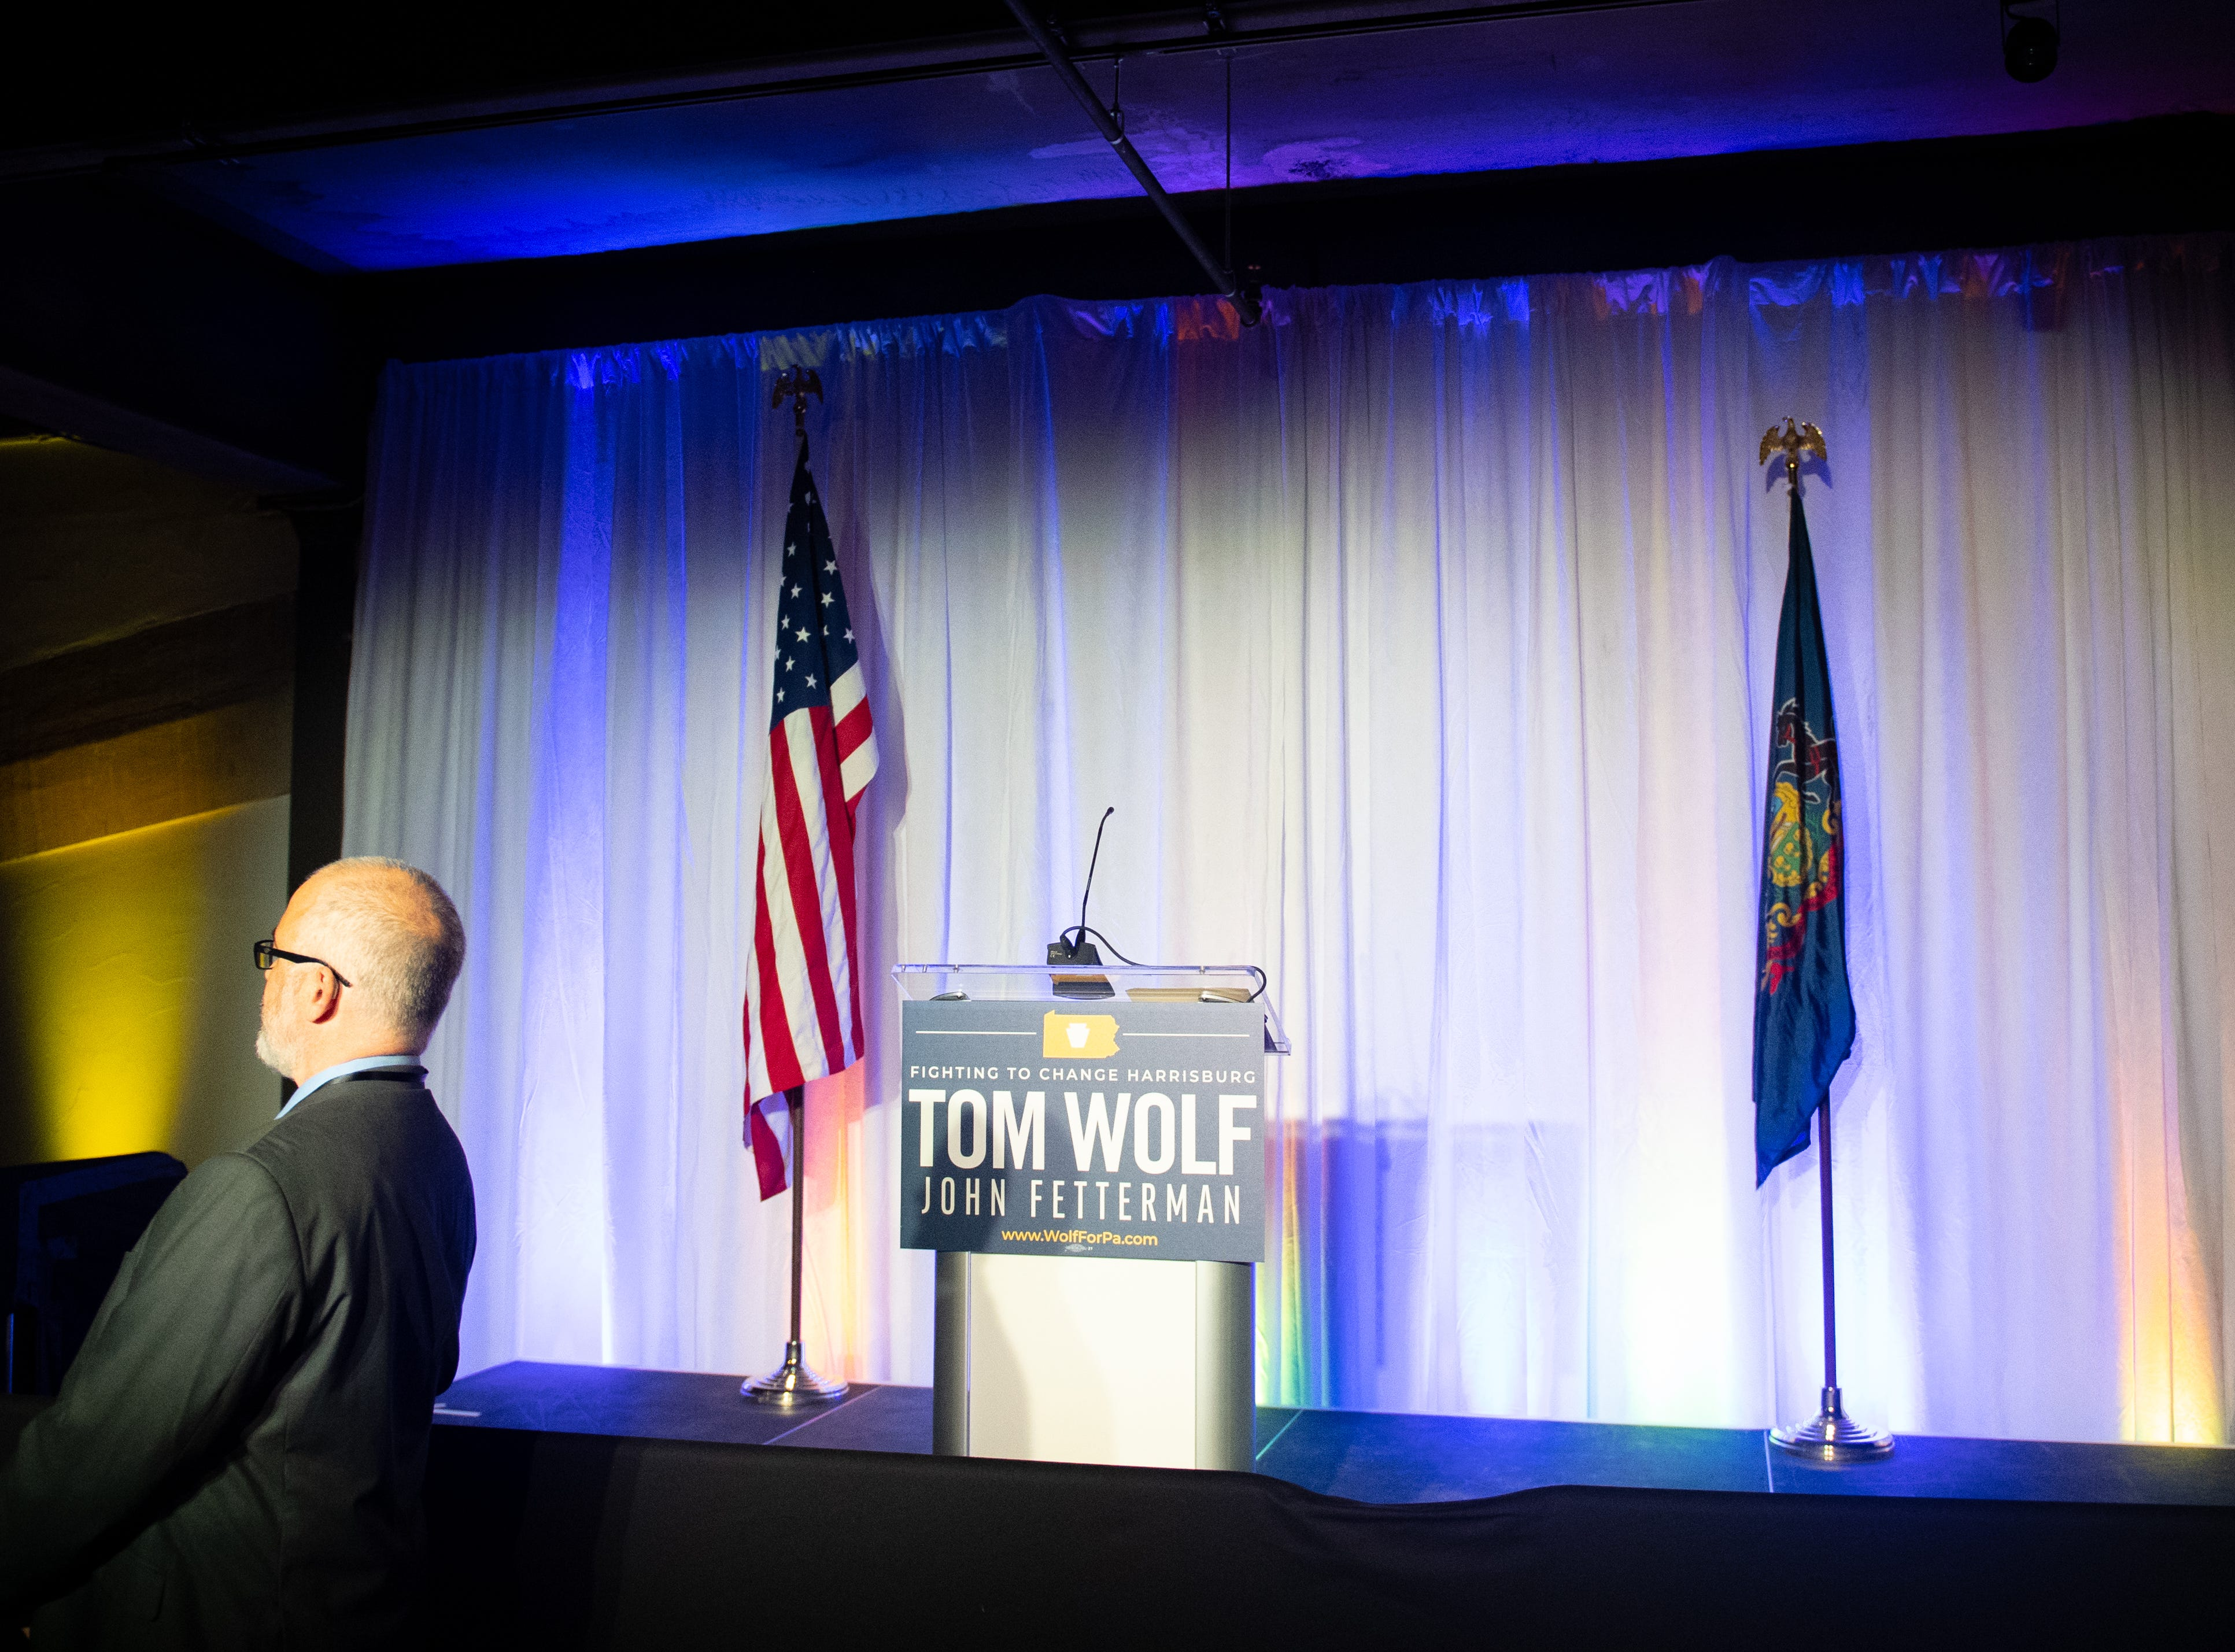 This is where Governor Tom Wolf will make his speech during the Governor Wolf and Mayor Fetterman Election Night Party at The Bond, Tuesday, November 6, 2018. Tom Wolf was re-elected as Governor of Pennsylvania after defeating Scott Wagner.